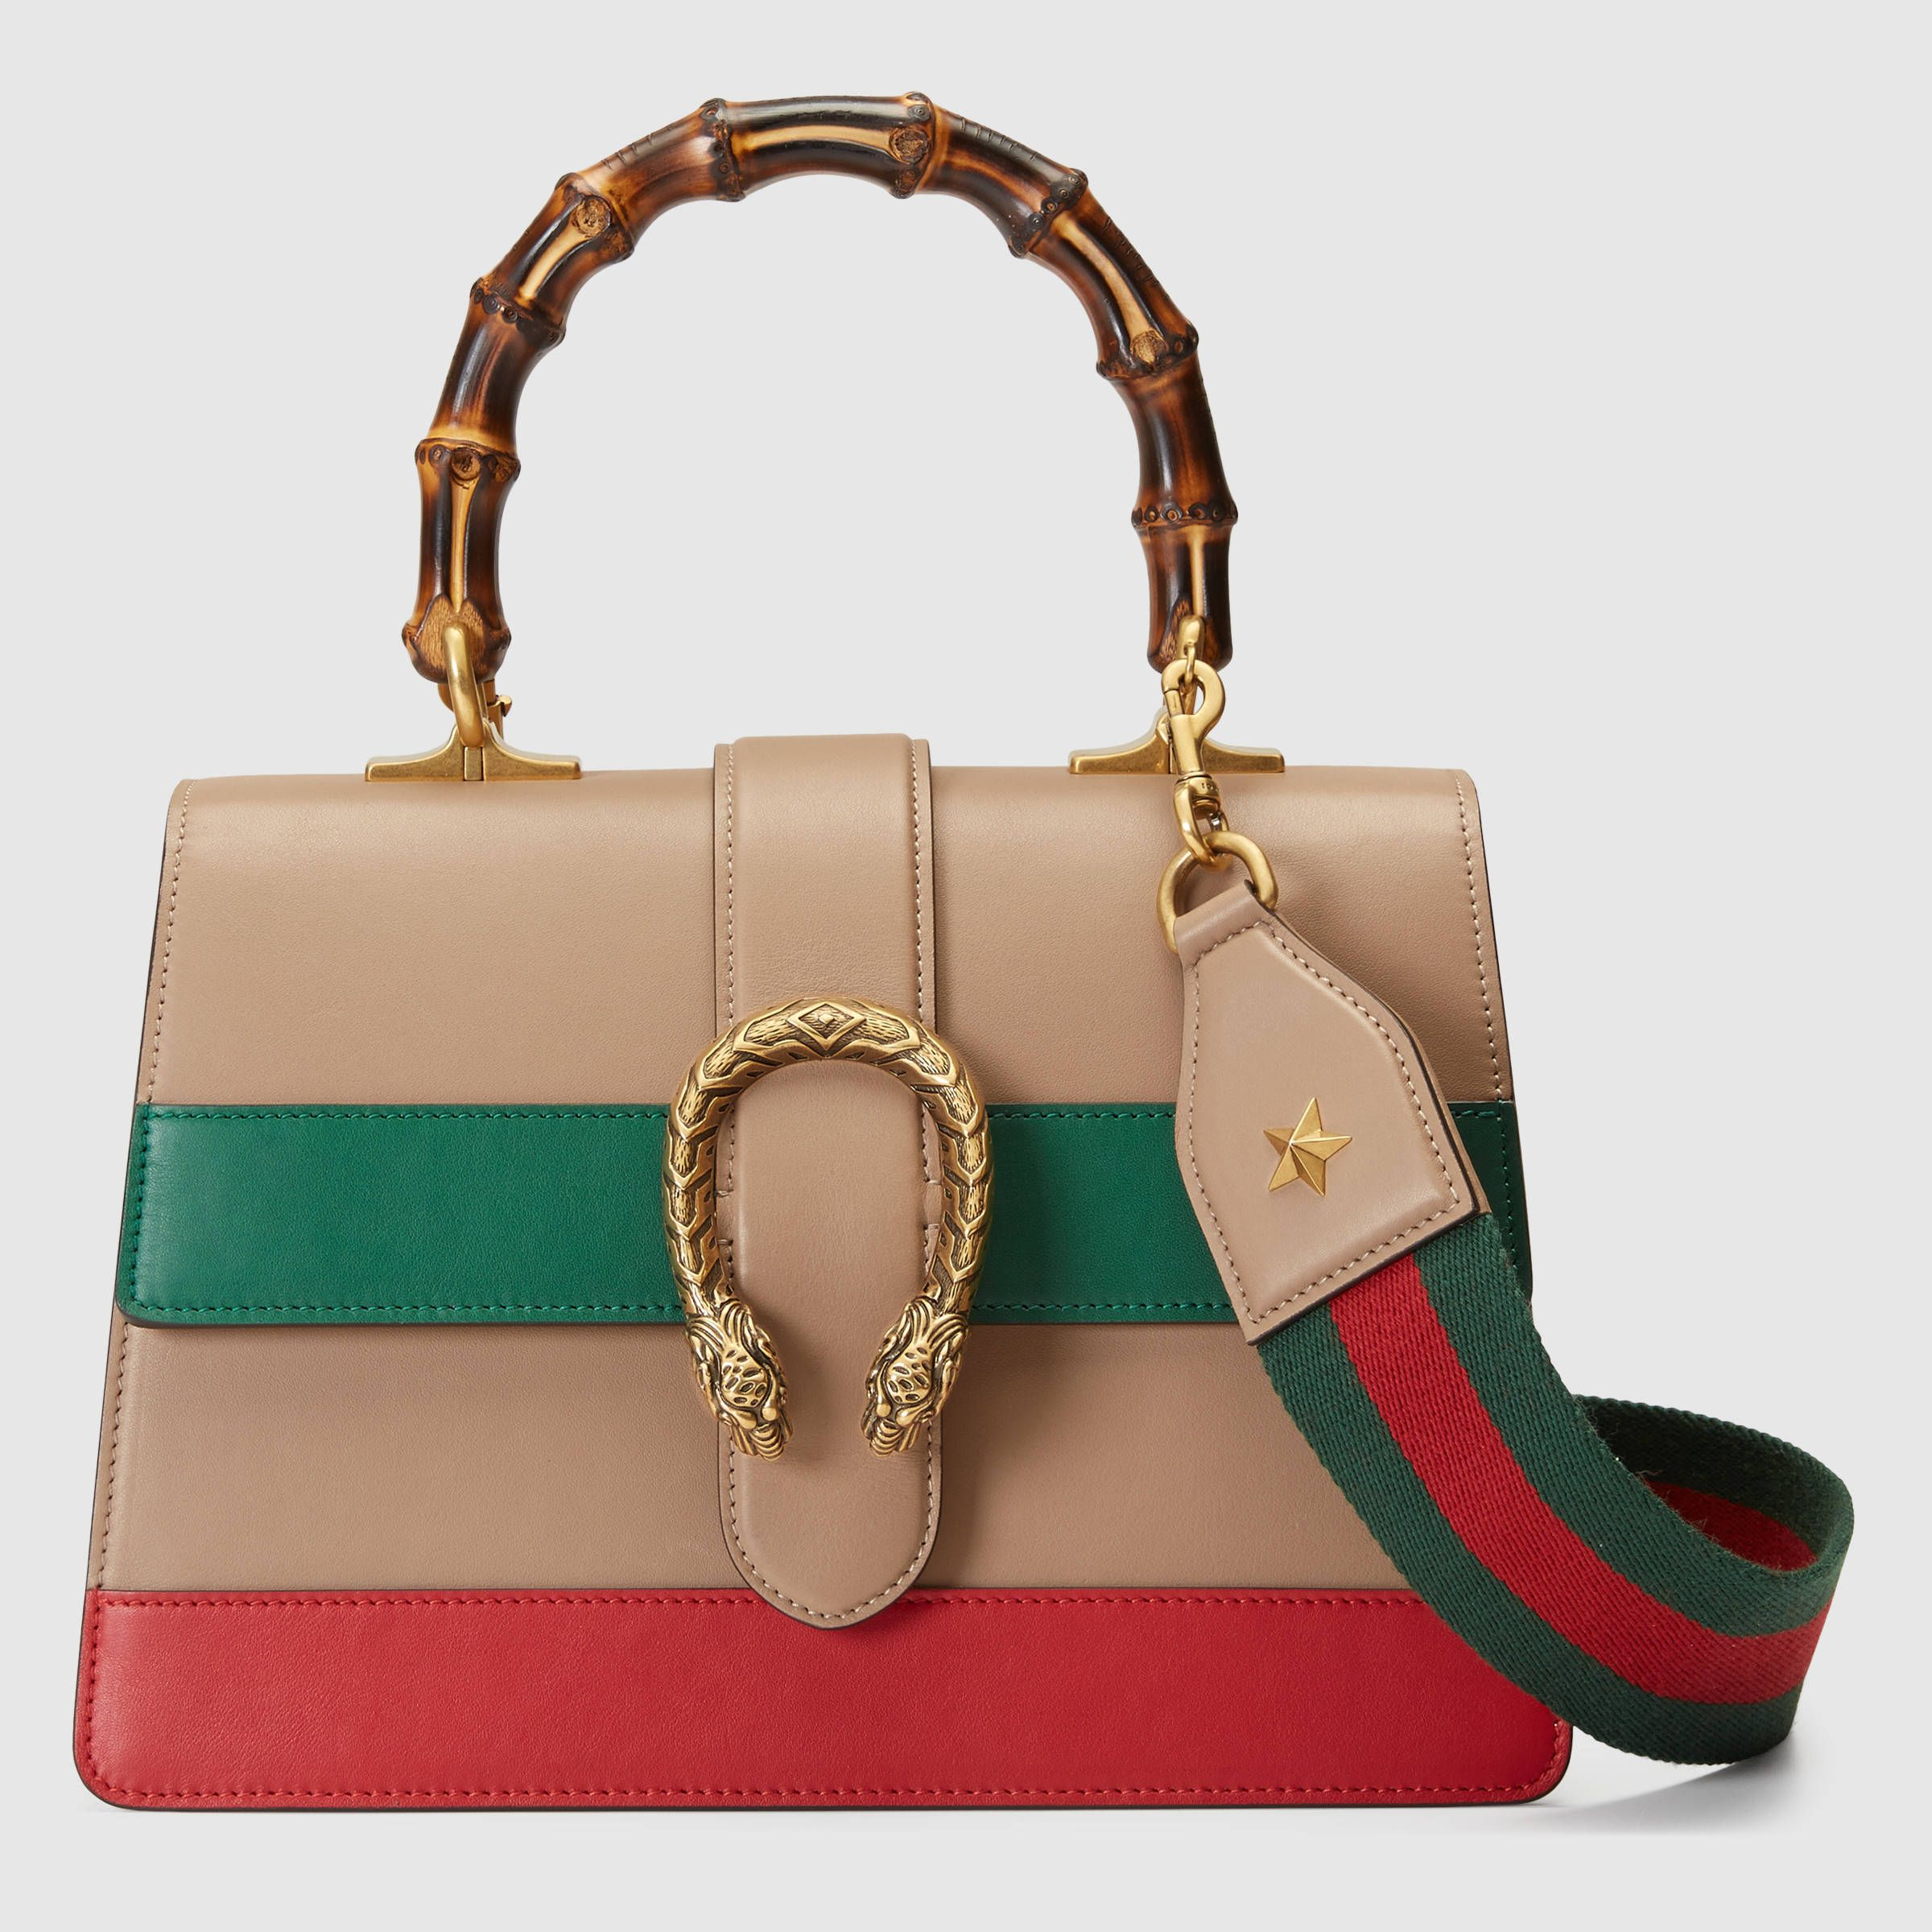 T Na Moda Gucci Dionysus Purses Handbags Clutches c3b9df92144